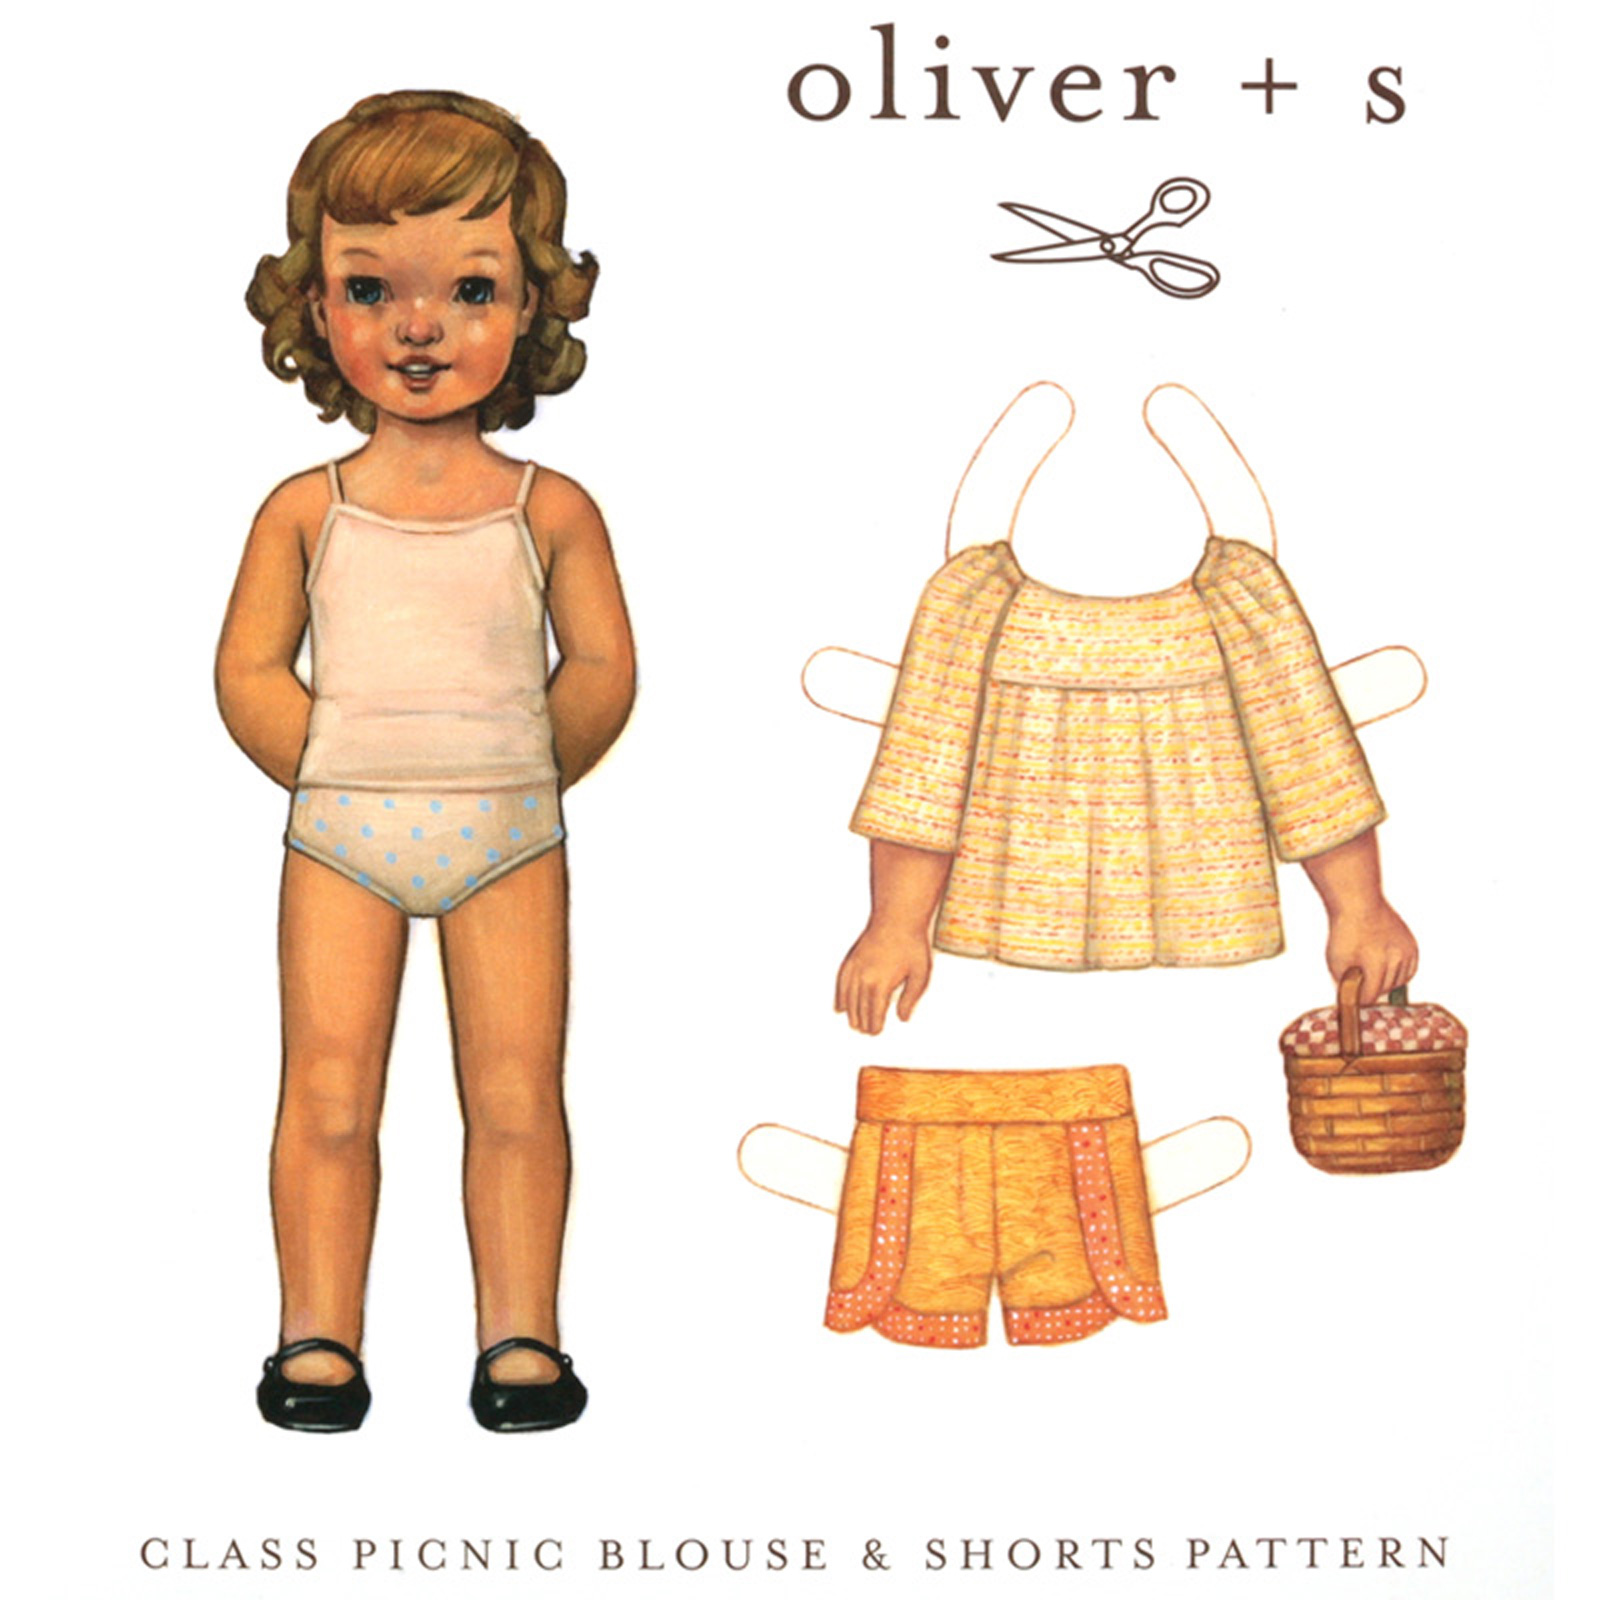 Oliver + S Class Picnic Blouse and Shorts